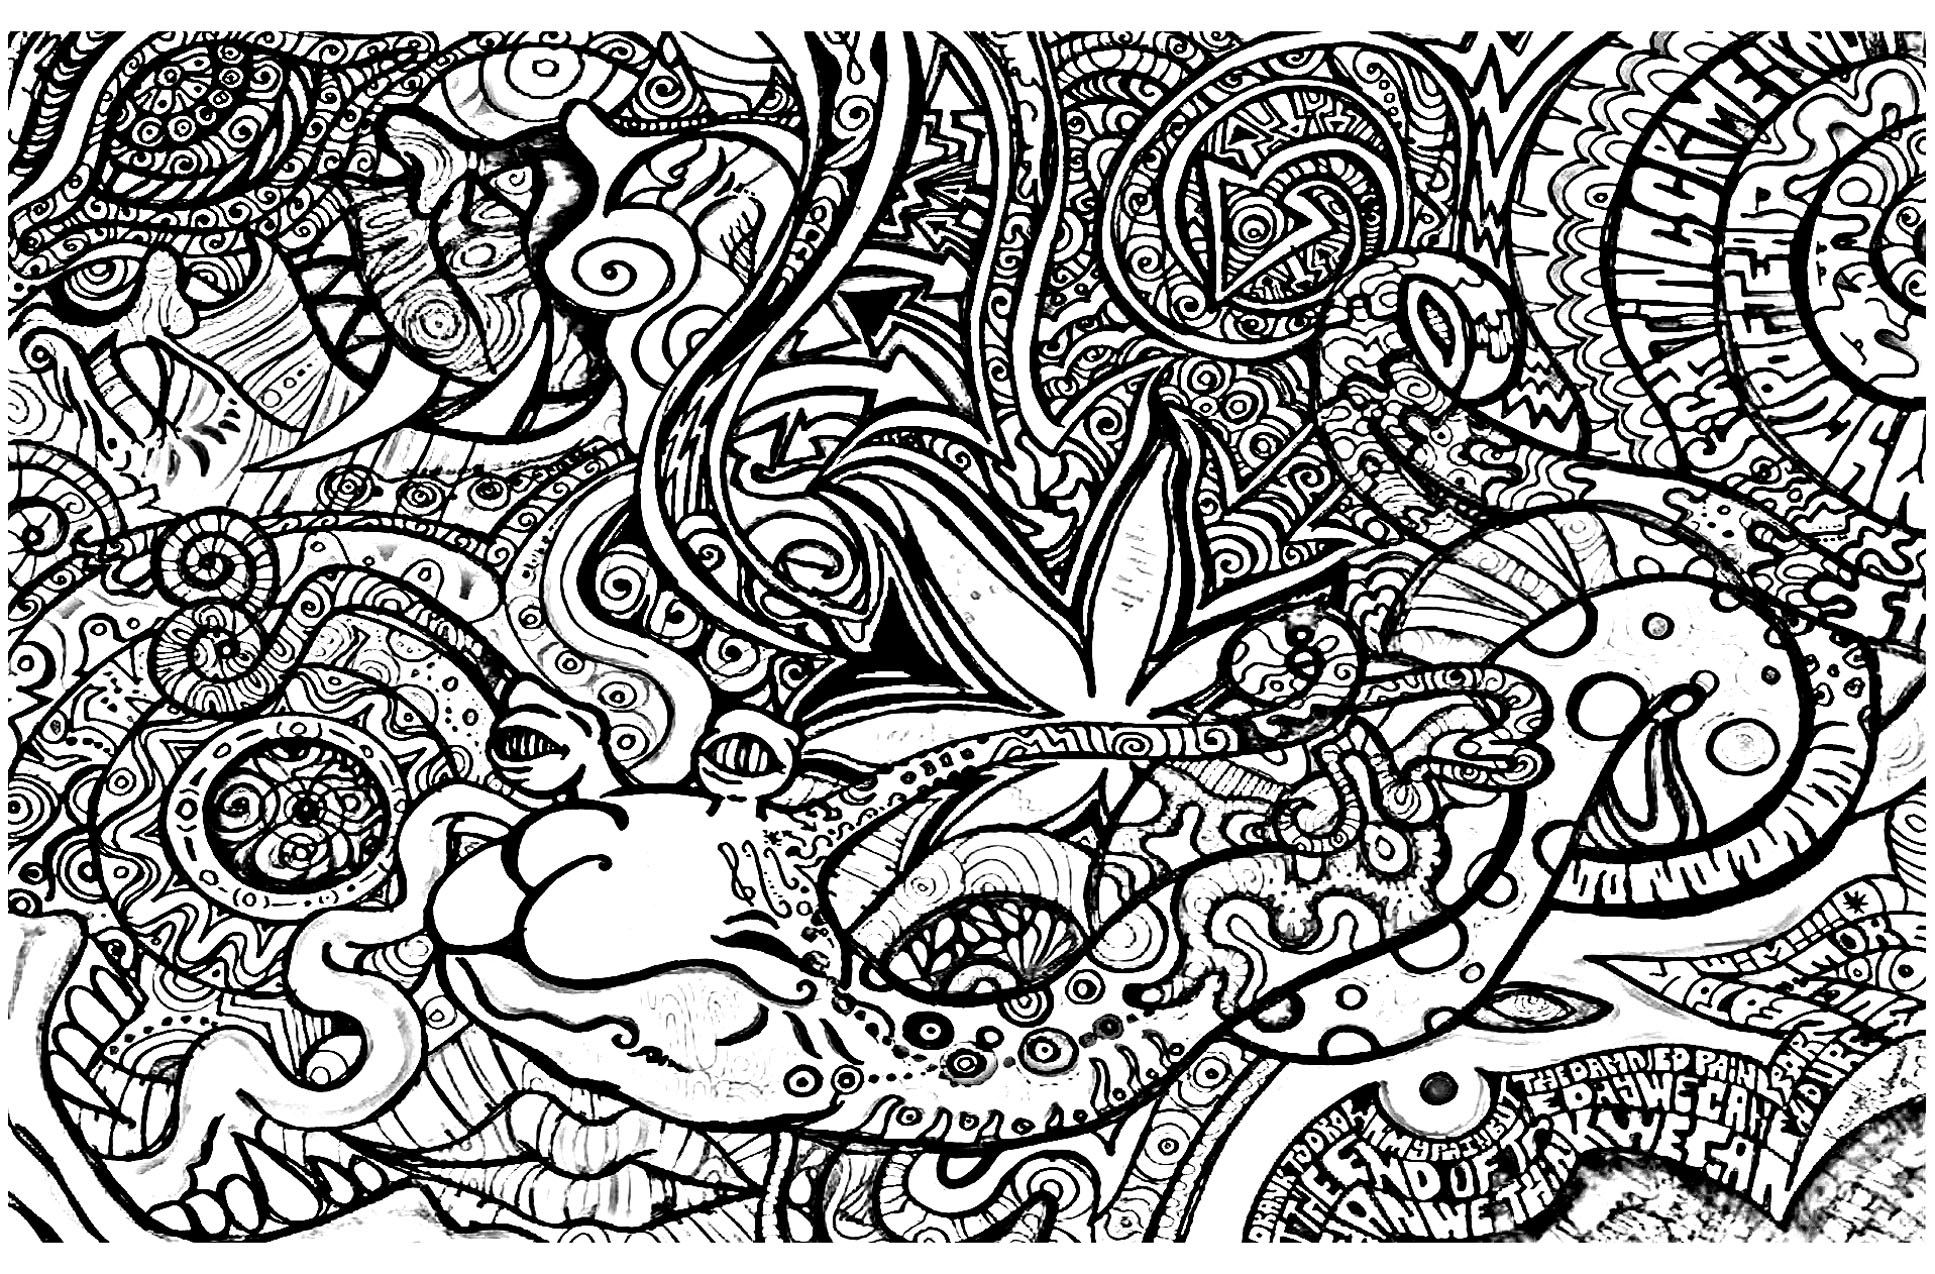 Strange creature and wacky objects psychedelic adult for Printable psychedelic coloring pages